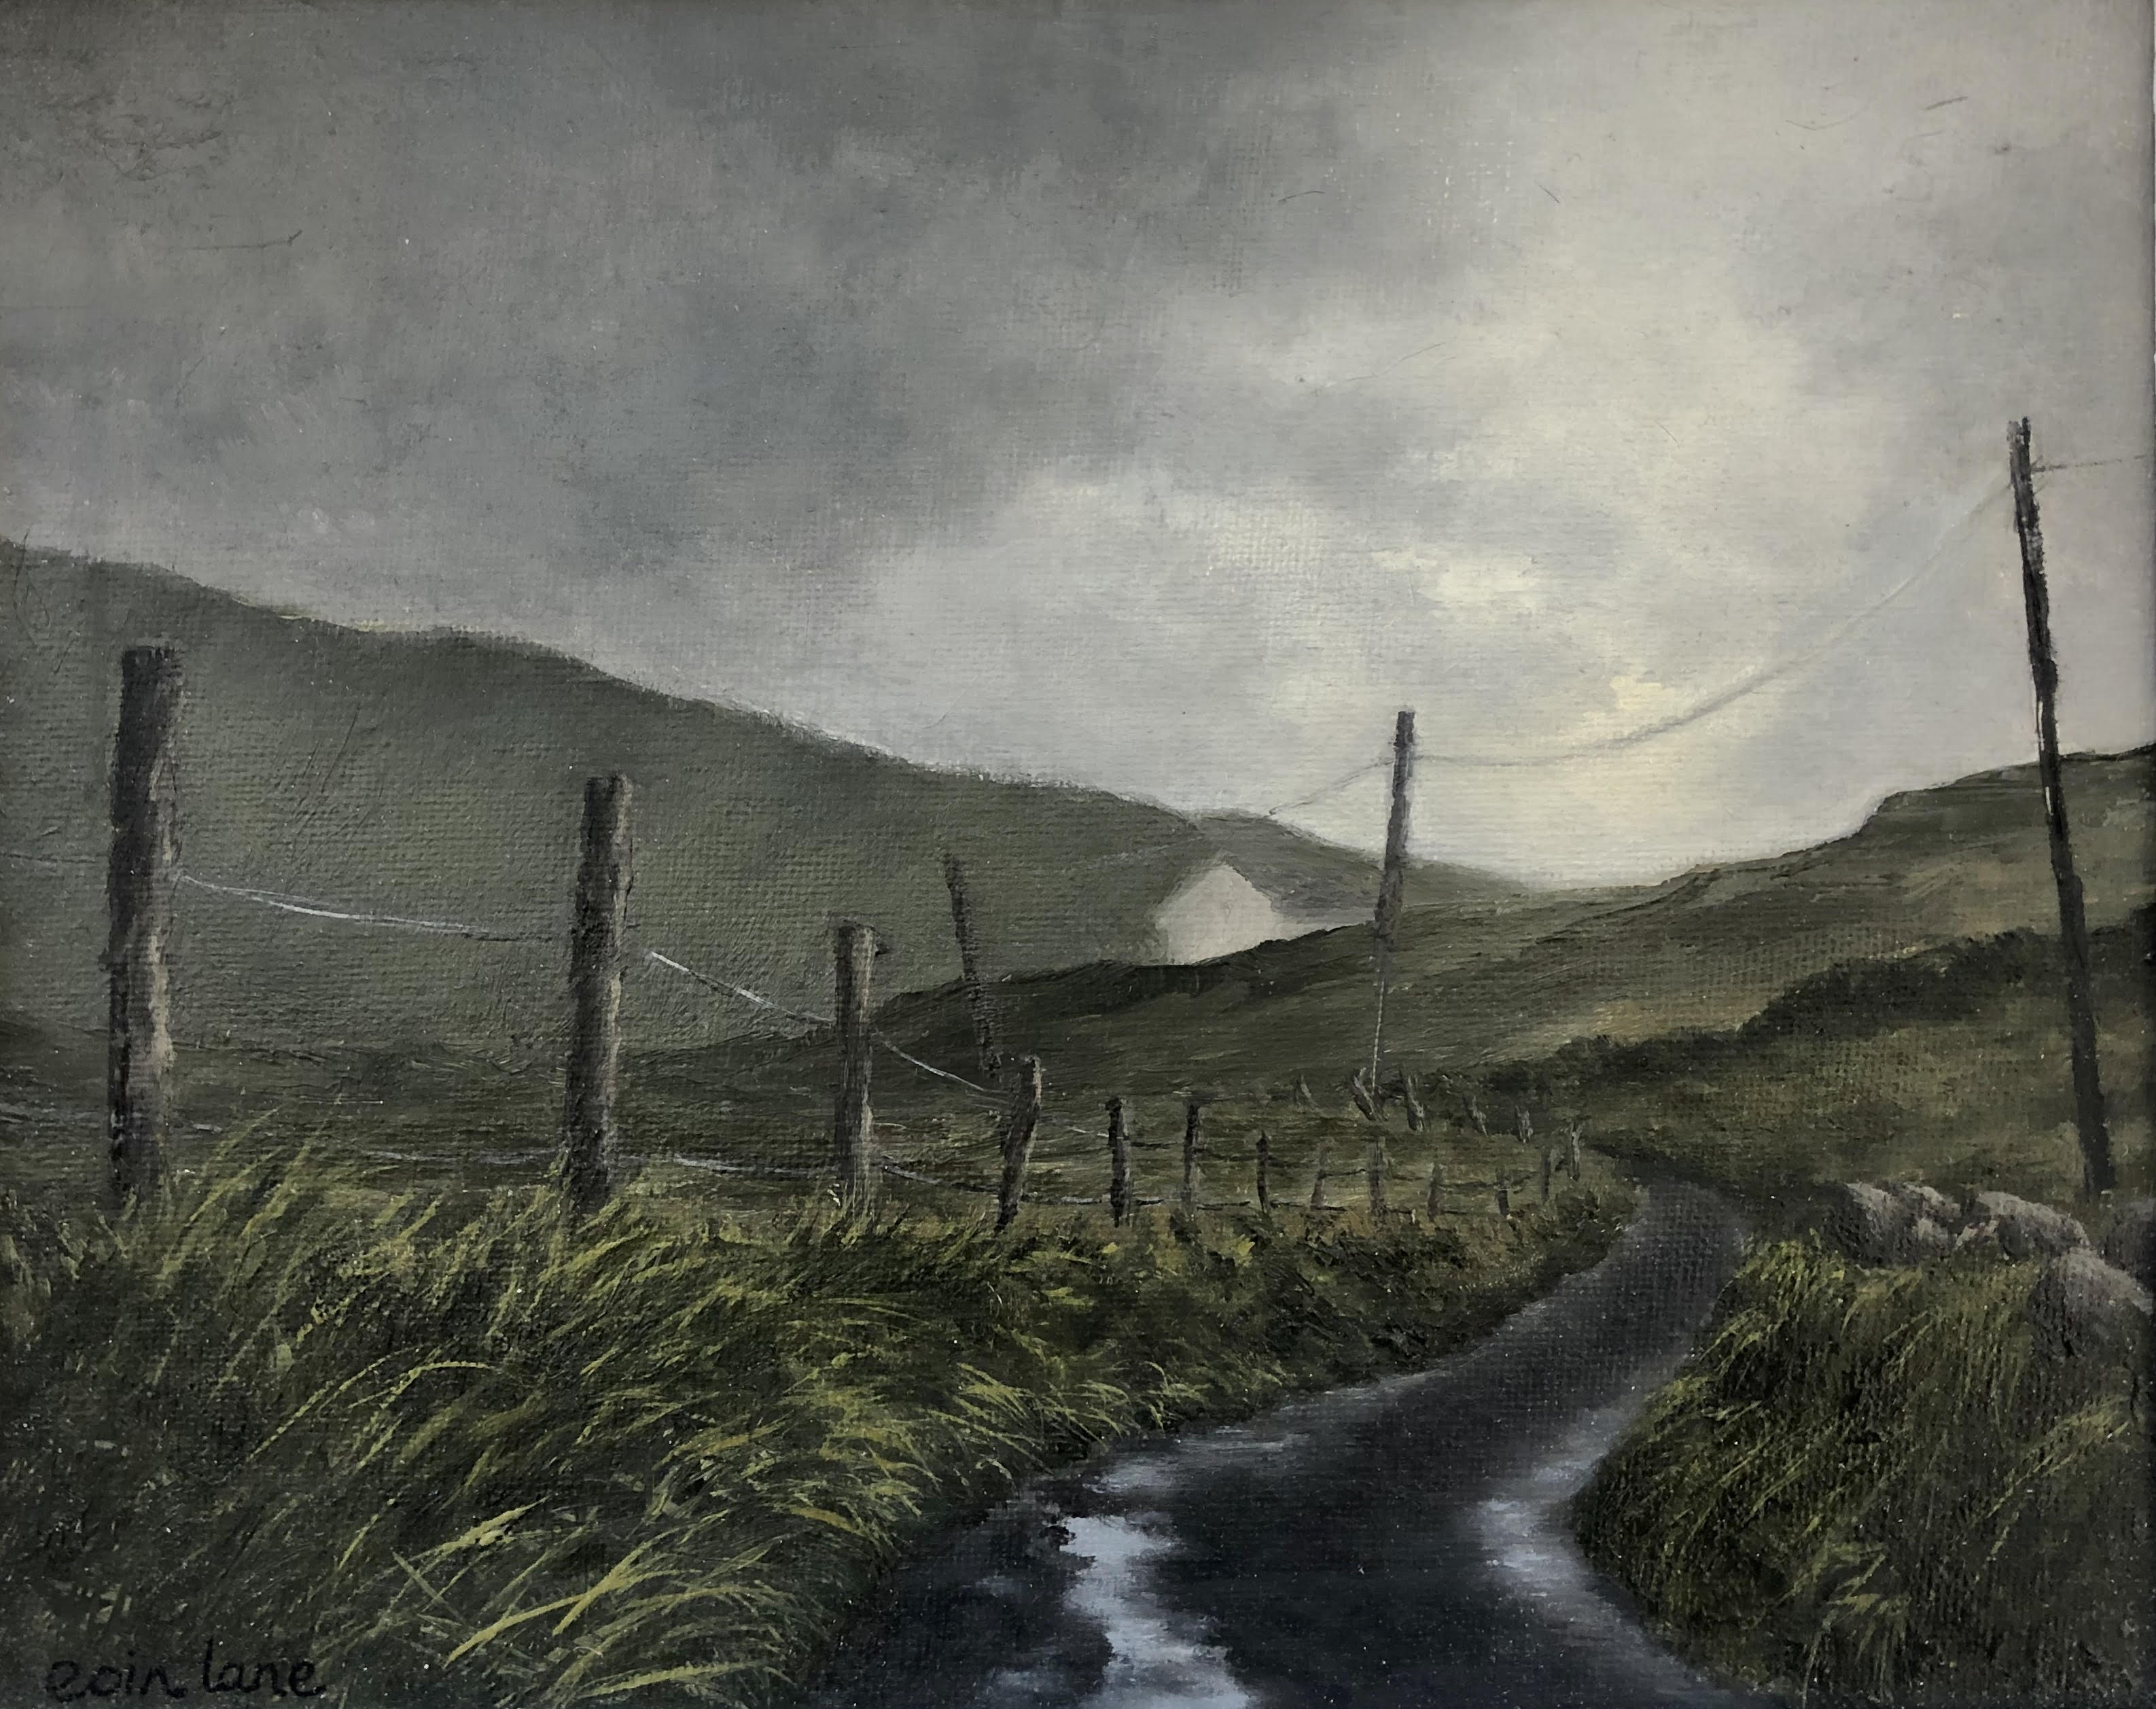 The Road Back from East End, Inishbofin by Eoin Lane